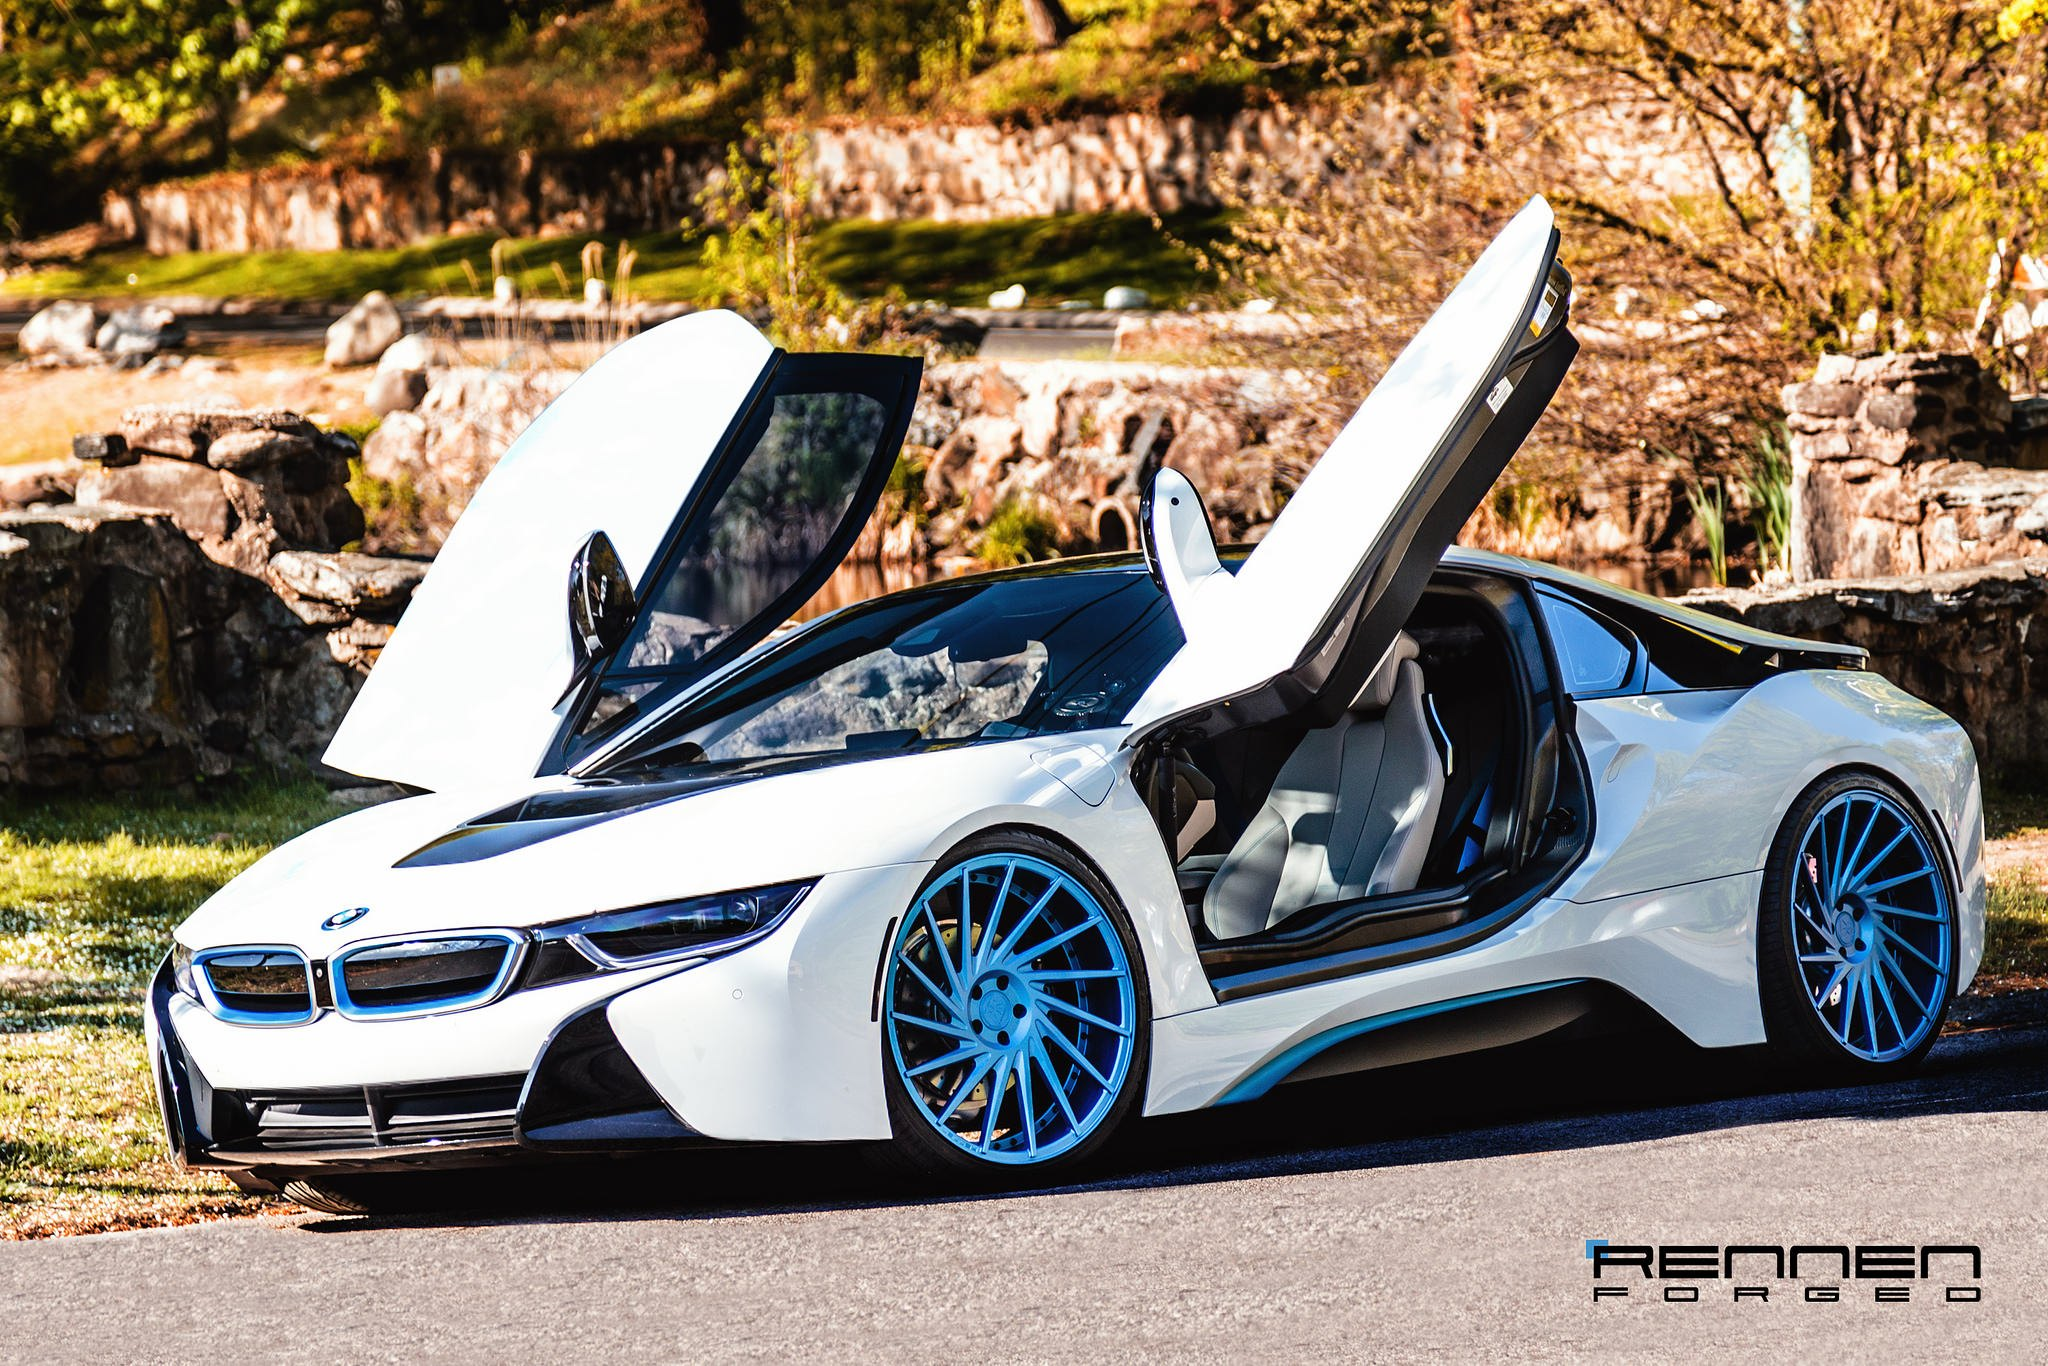 Revolutionary Machine White Bmw I8 On Blue Forged Rennen Wheels